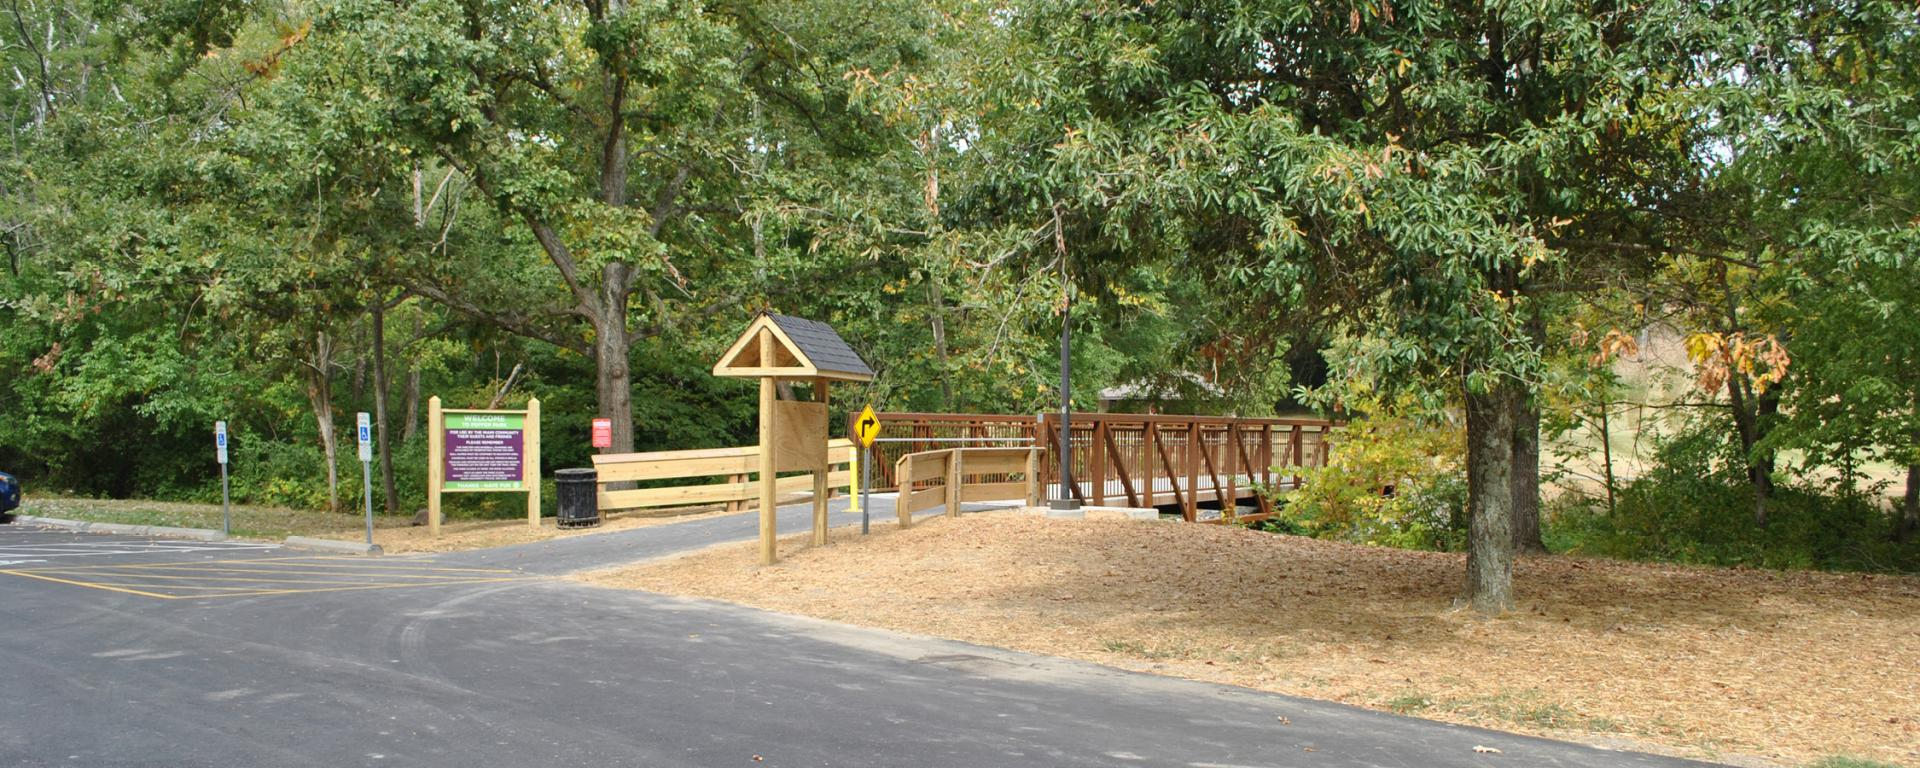 trail parking lot and entrance